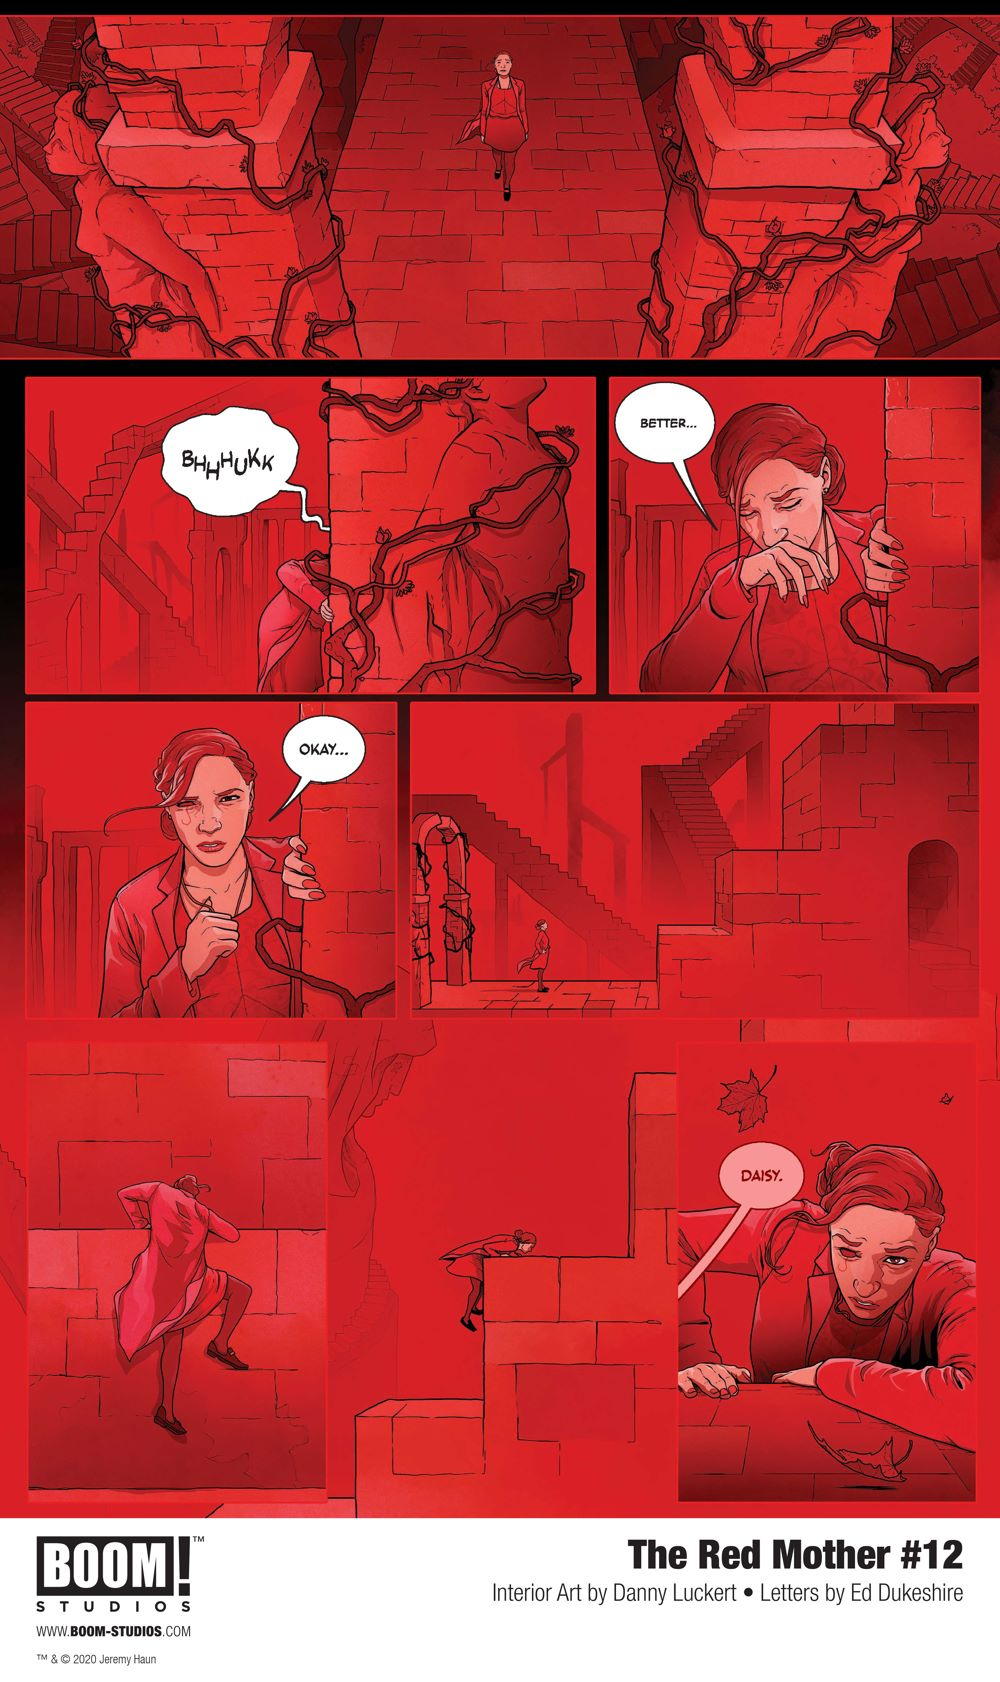 RedMother_012_InteriorArt_003_PROMO First Look at BOOM! Studios' THE RED MOTHER #12